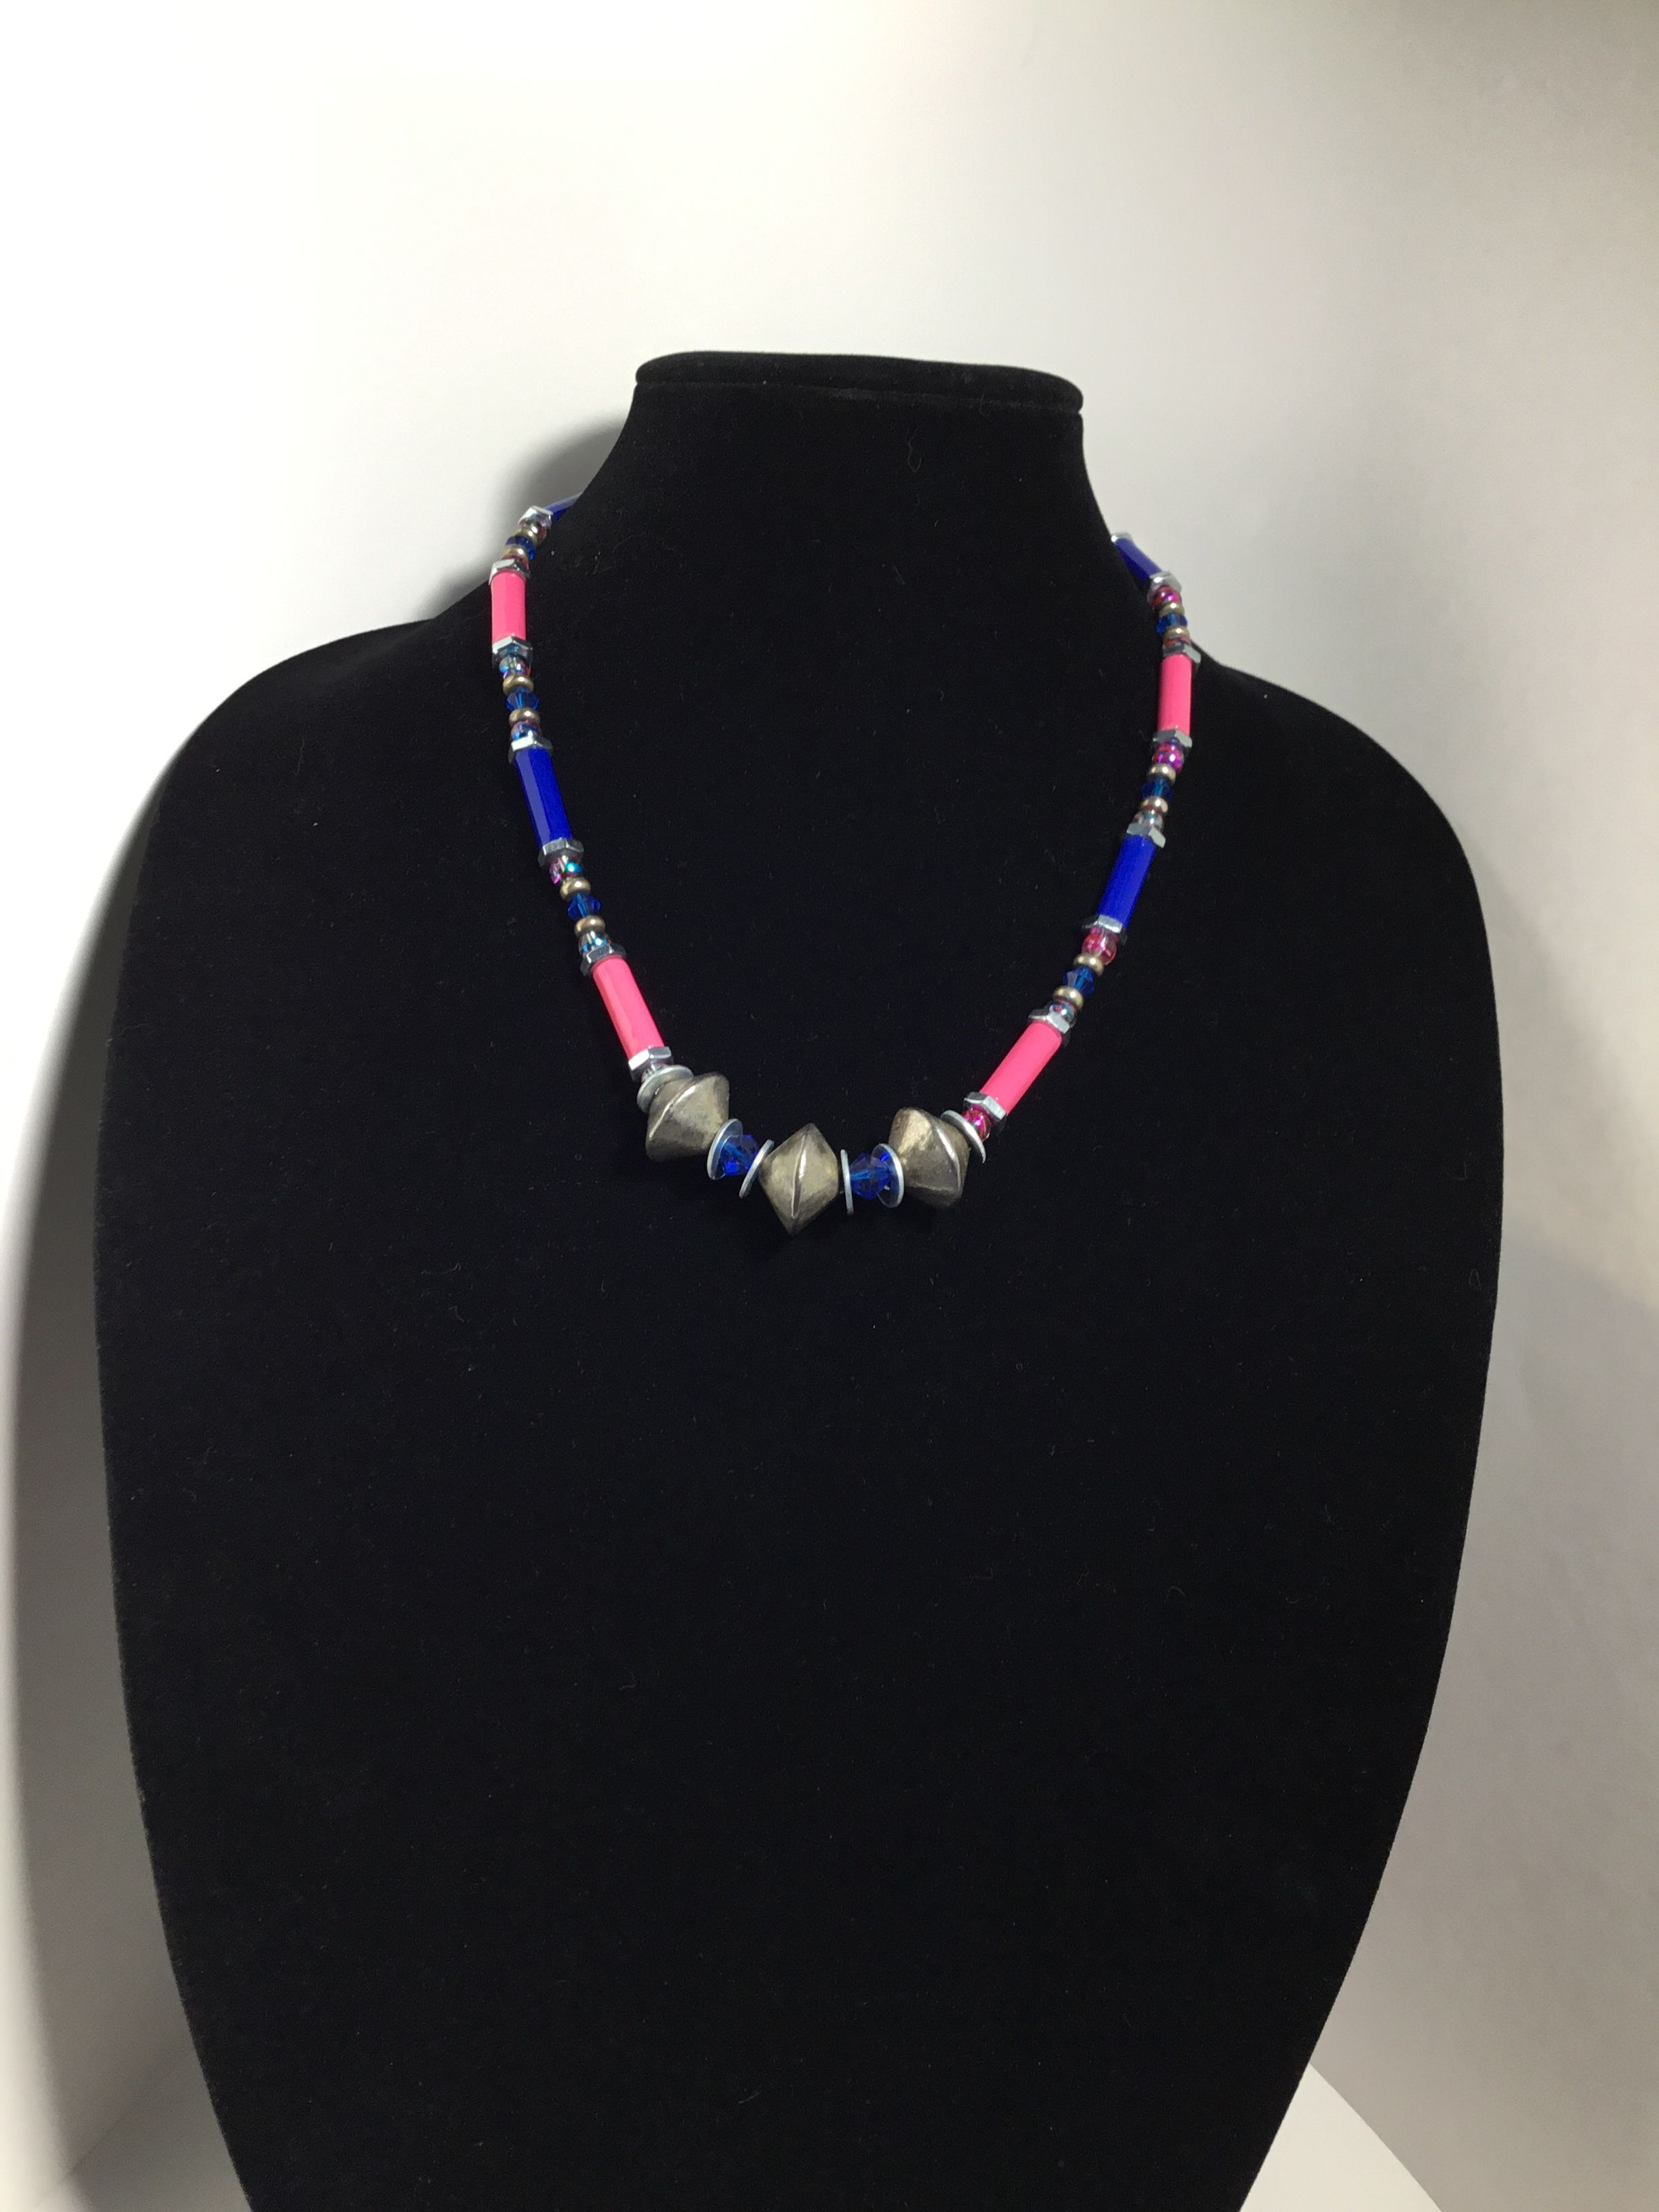 Handmade paper bead necklace accented with brass hex nuts and metal, glass, and Czech glass beads.